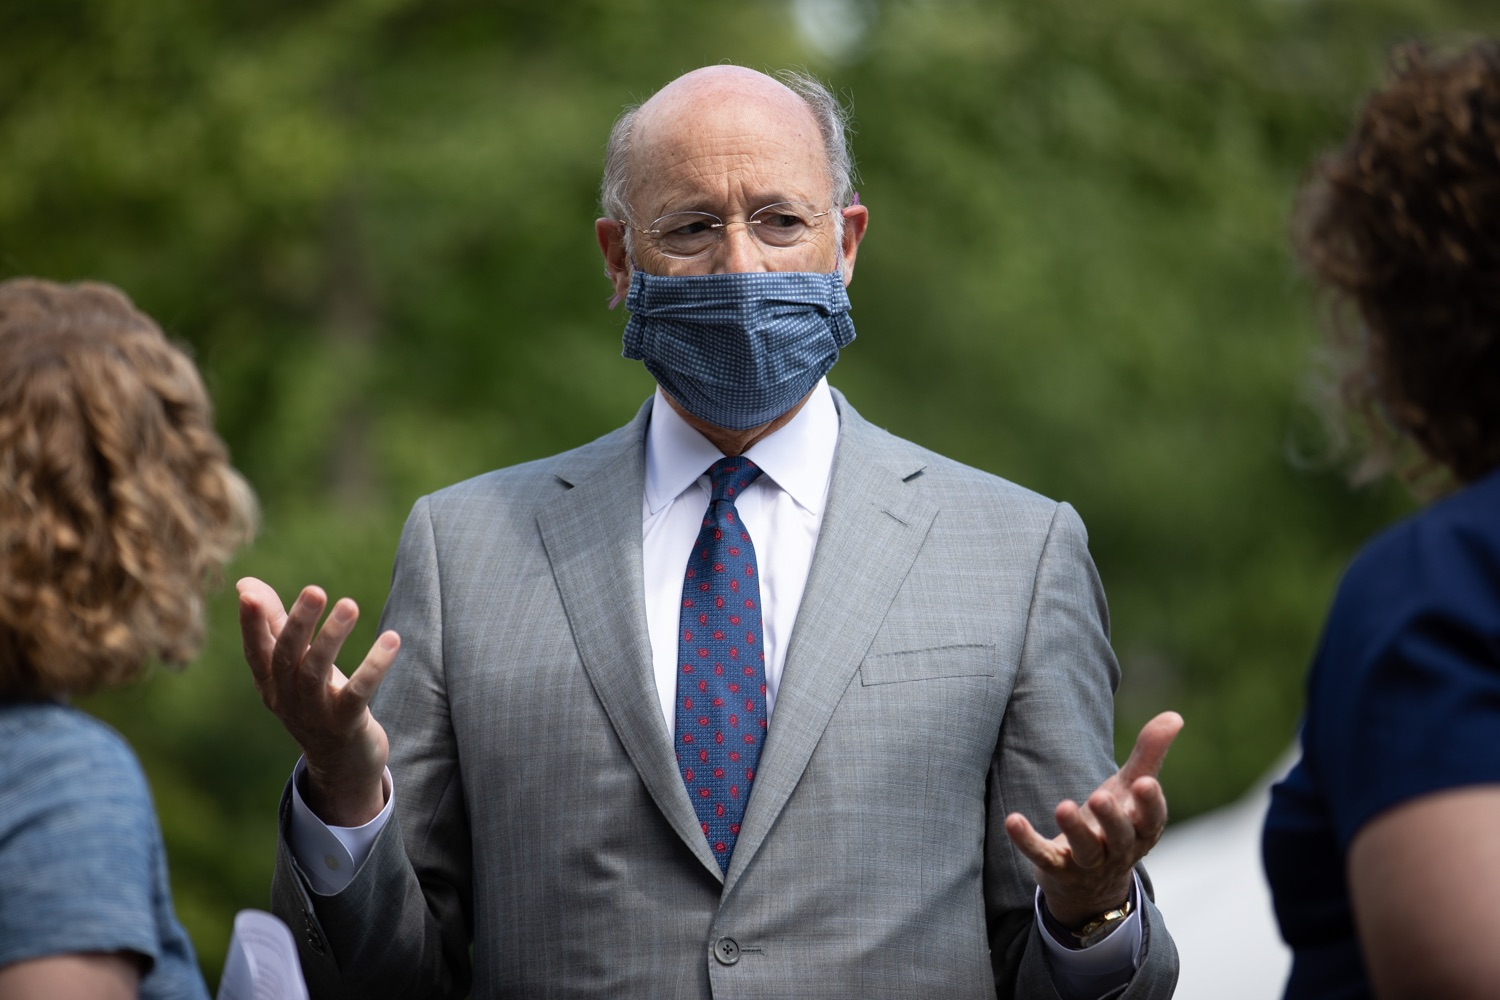 "<a href=""https://filesource.wostreaming.net/commonwealthofpa/photo/18093_gov-healthcare_workers_dz_06.jpg"" target=""_blank"">⇣ Download Photo<br></a>Pennsylvania Governor Tom Wolf speaking with medical workers during his visit to Milton S. Hershey Medical Center. As the commonwealth continues its measured, phased reopening and COVID-19 case counts continue to decline, Governor Tom Wolf visited Penn State Milton S. Hershey Medical Center today to thank staff and learn more about how the facility is handling the pandemic and preparing for a possible resurgence in the fall.  Harrisburg, PA  June 24, 2020"